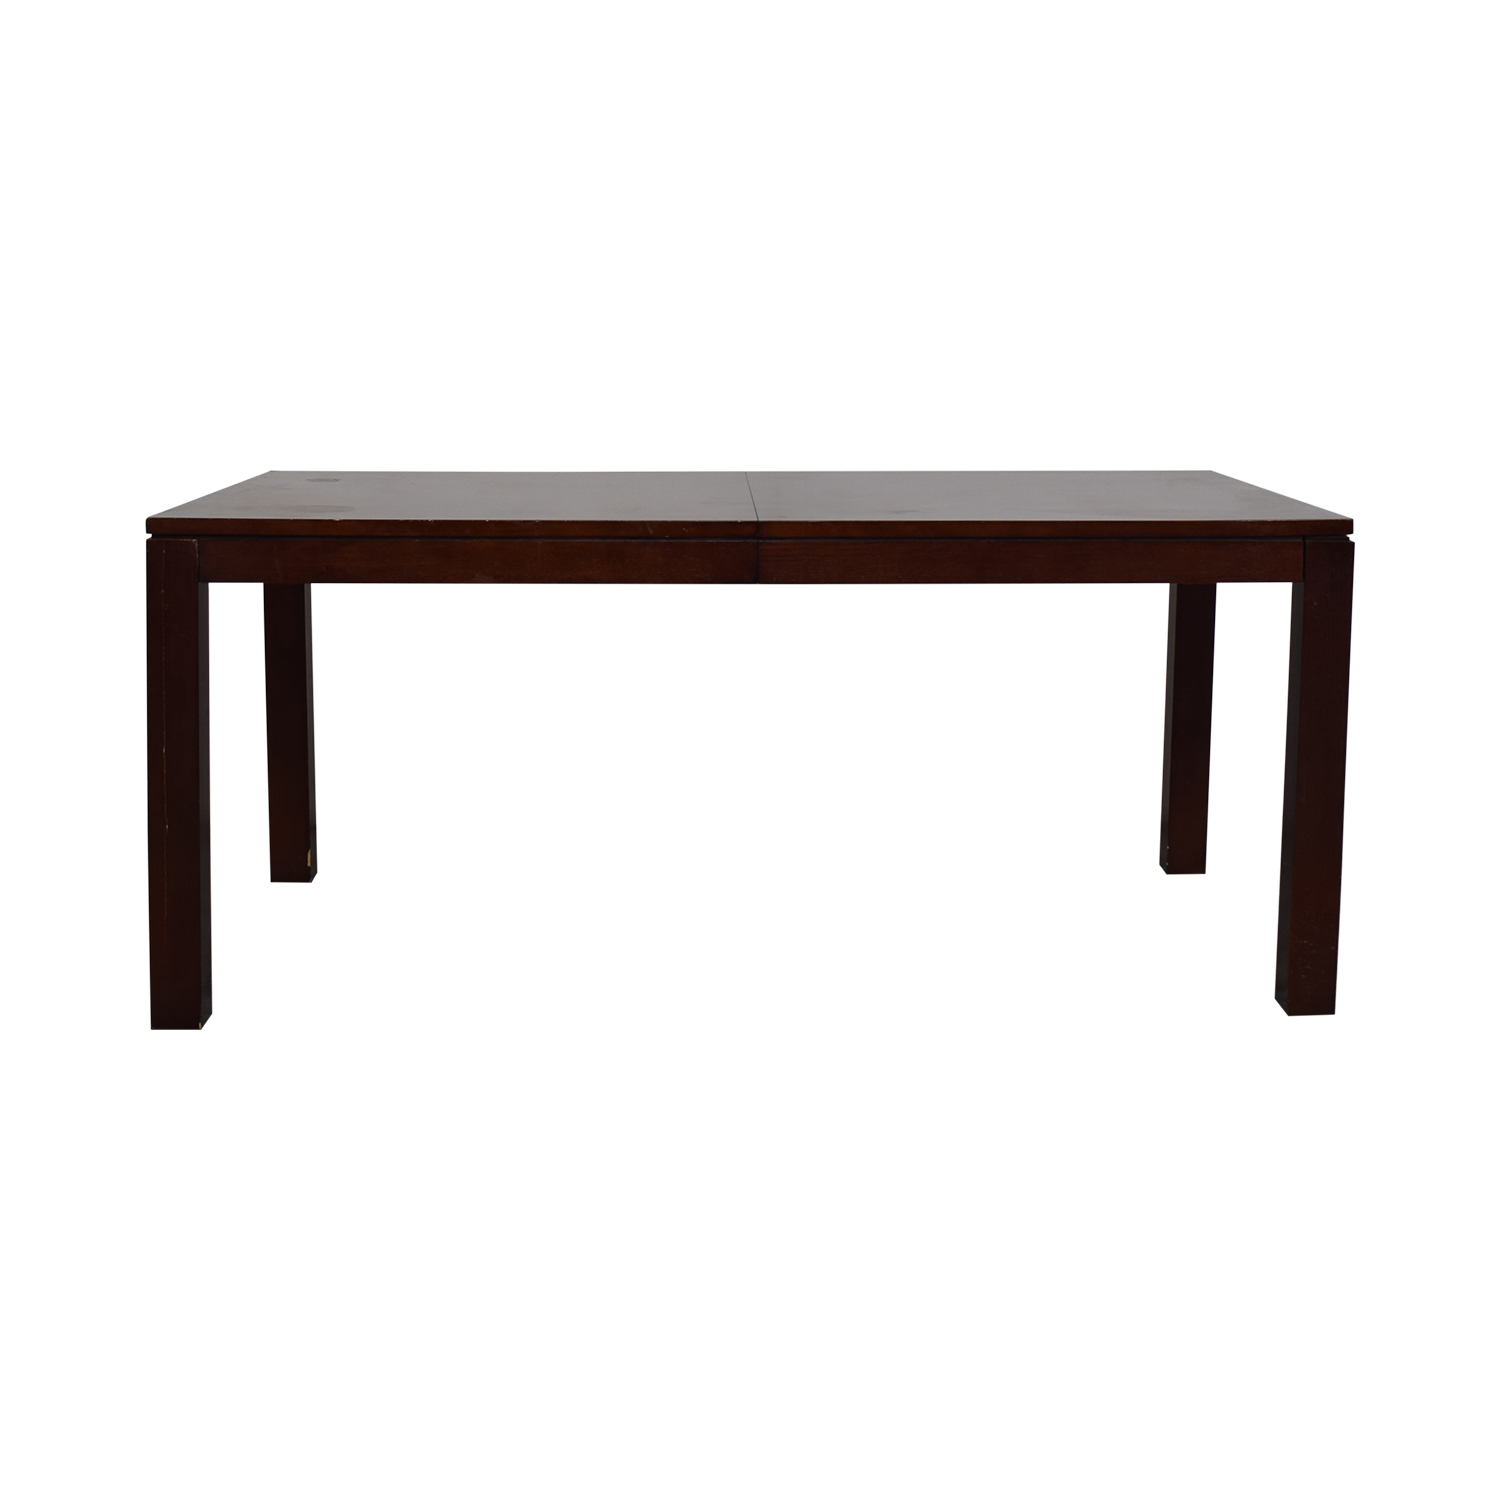 Ethan Allen Ethan Allen Solid Wood Dining Table for sale